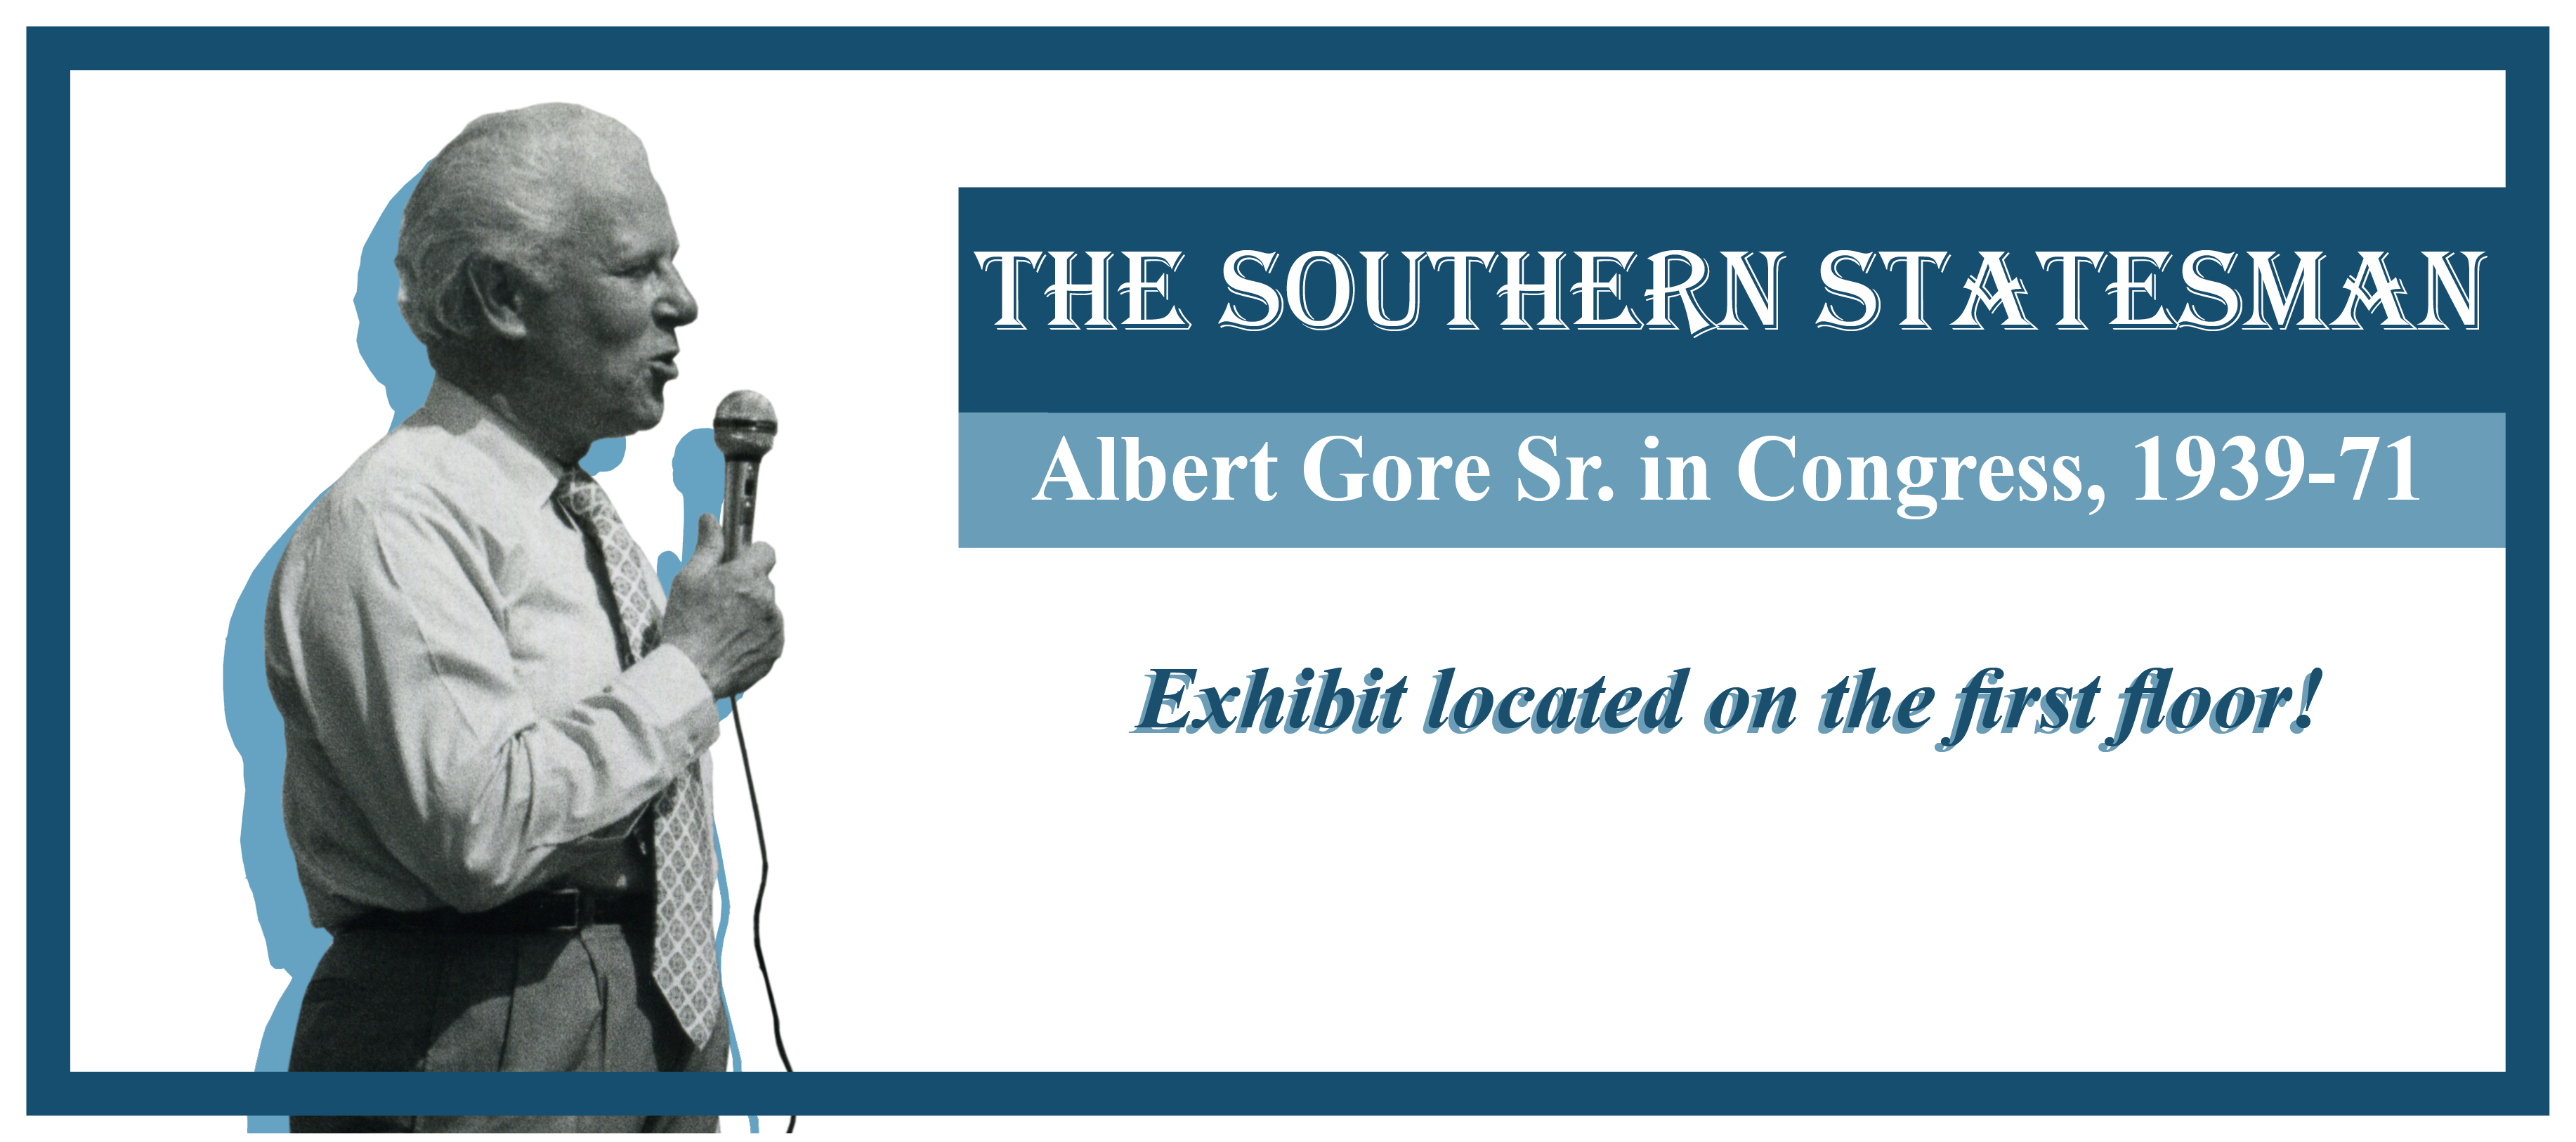 Al Gore Senior Exhibit, 1st floor